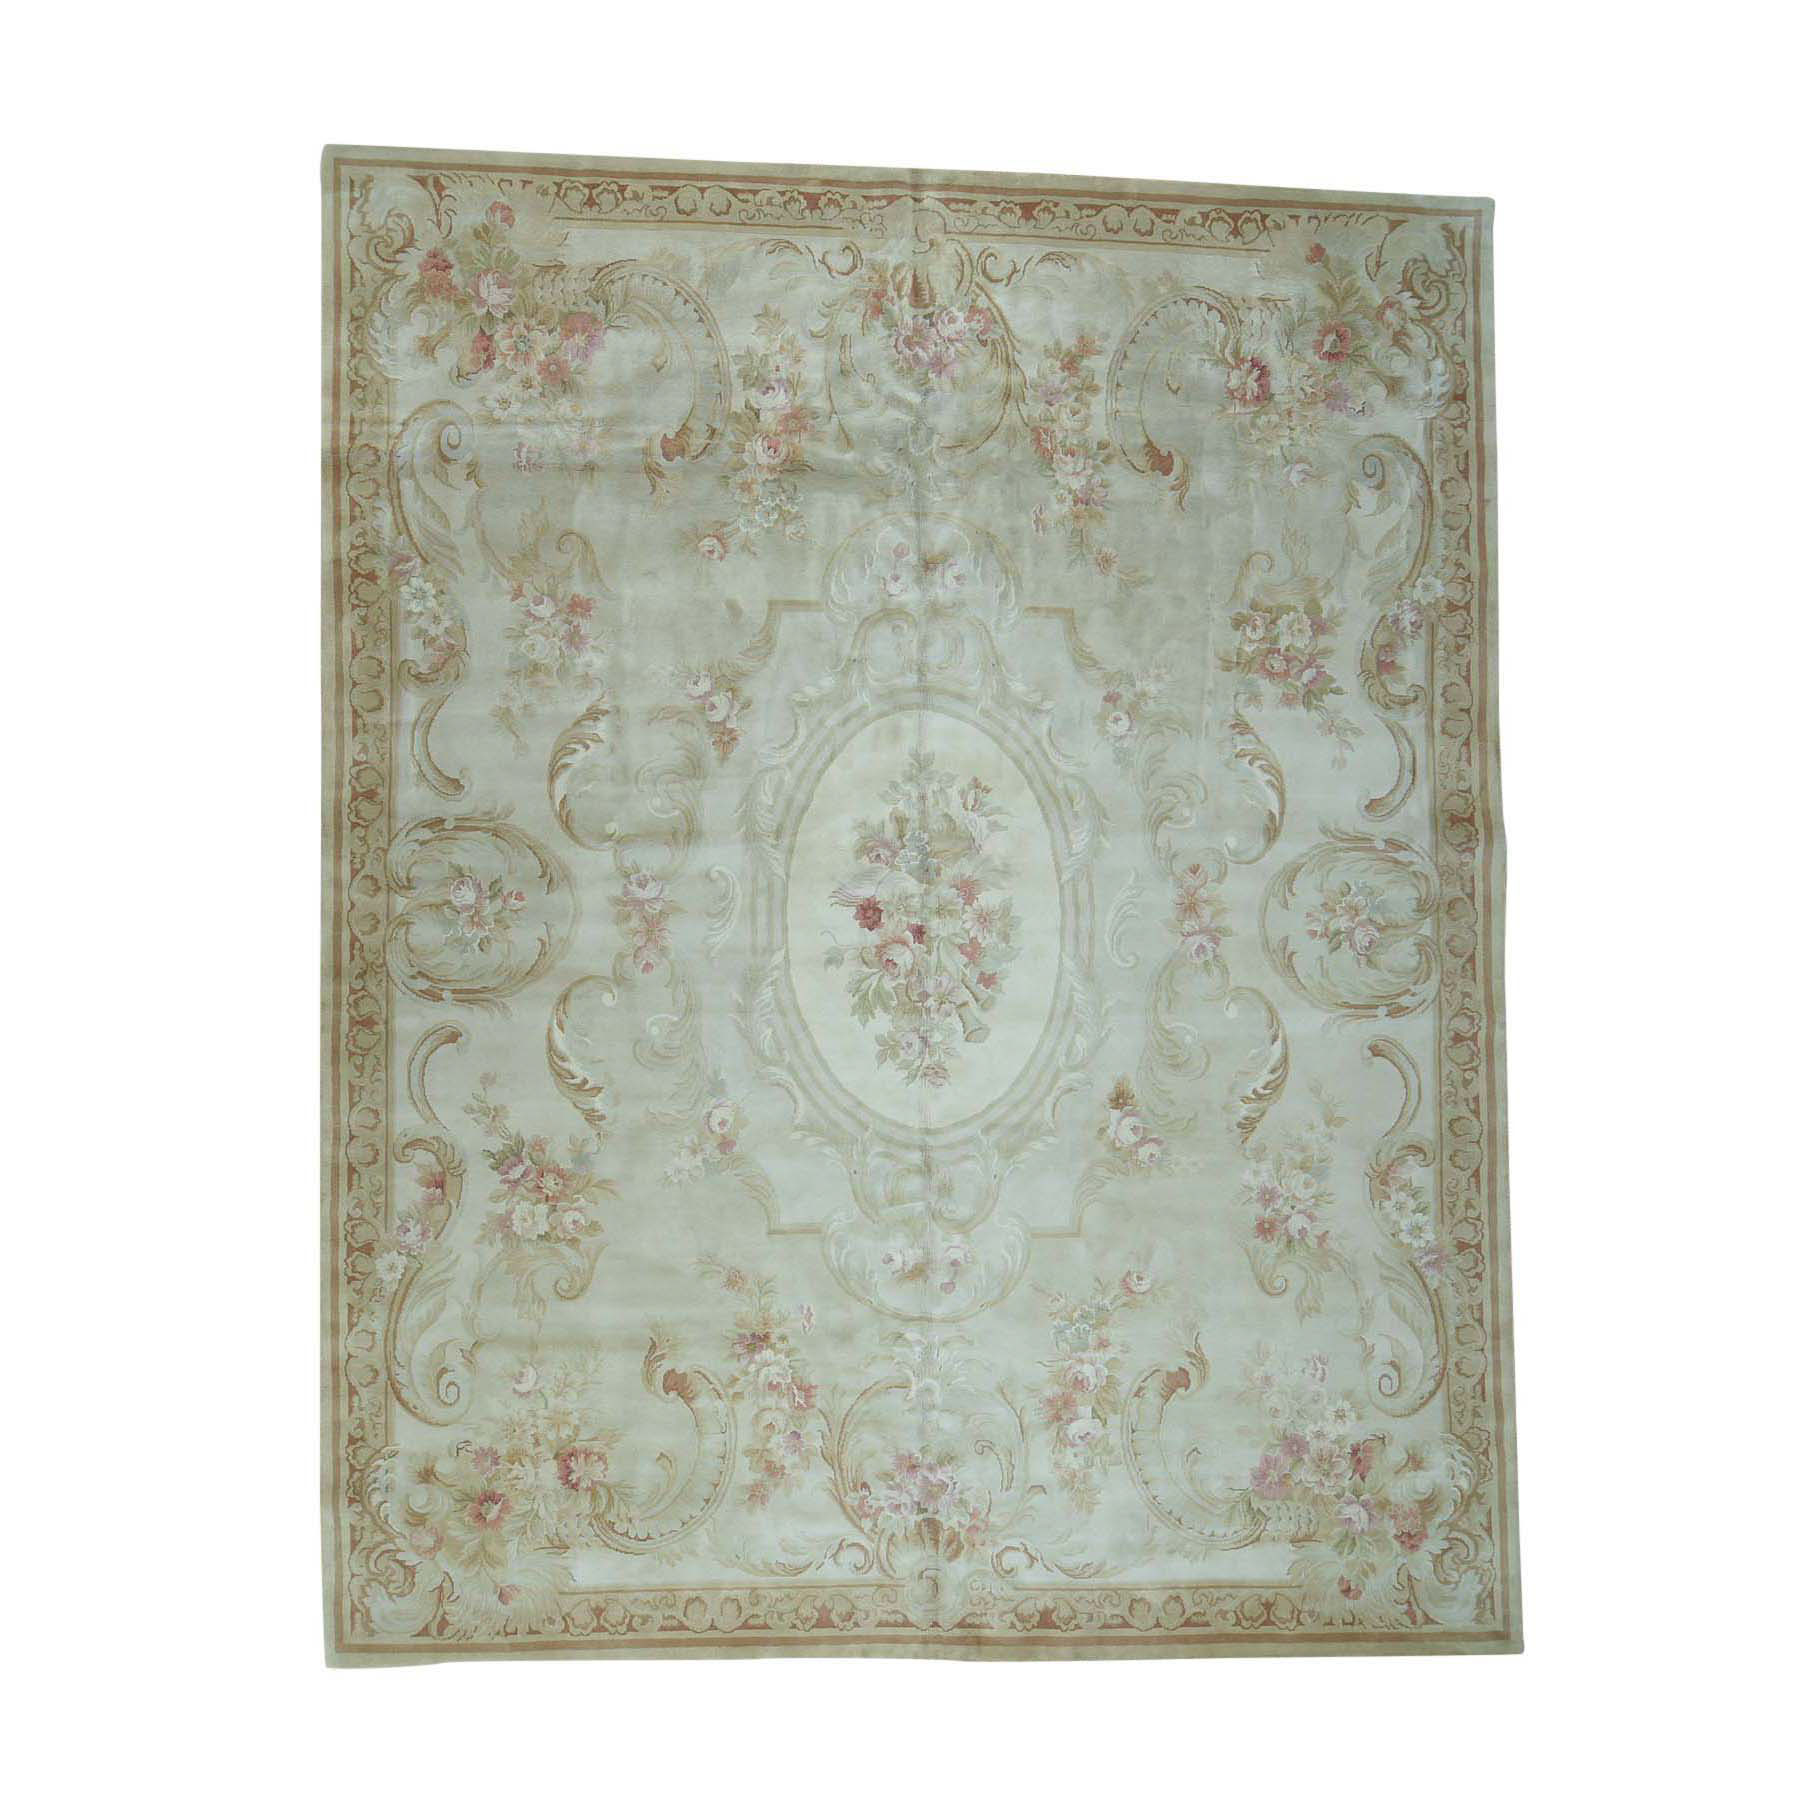 12'x15' Charles X Design Thick And Plush European Savonnerie Oversize Rug